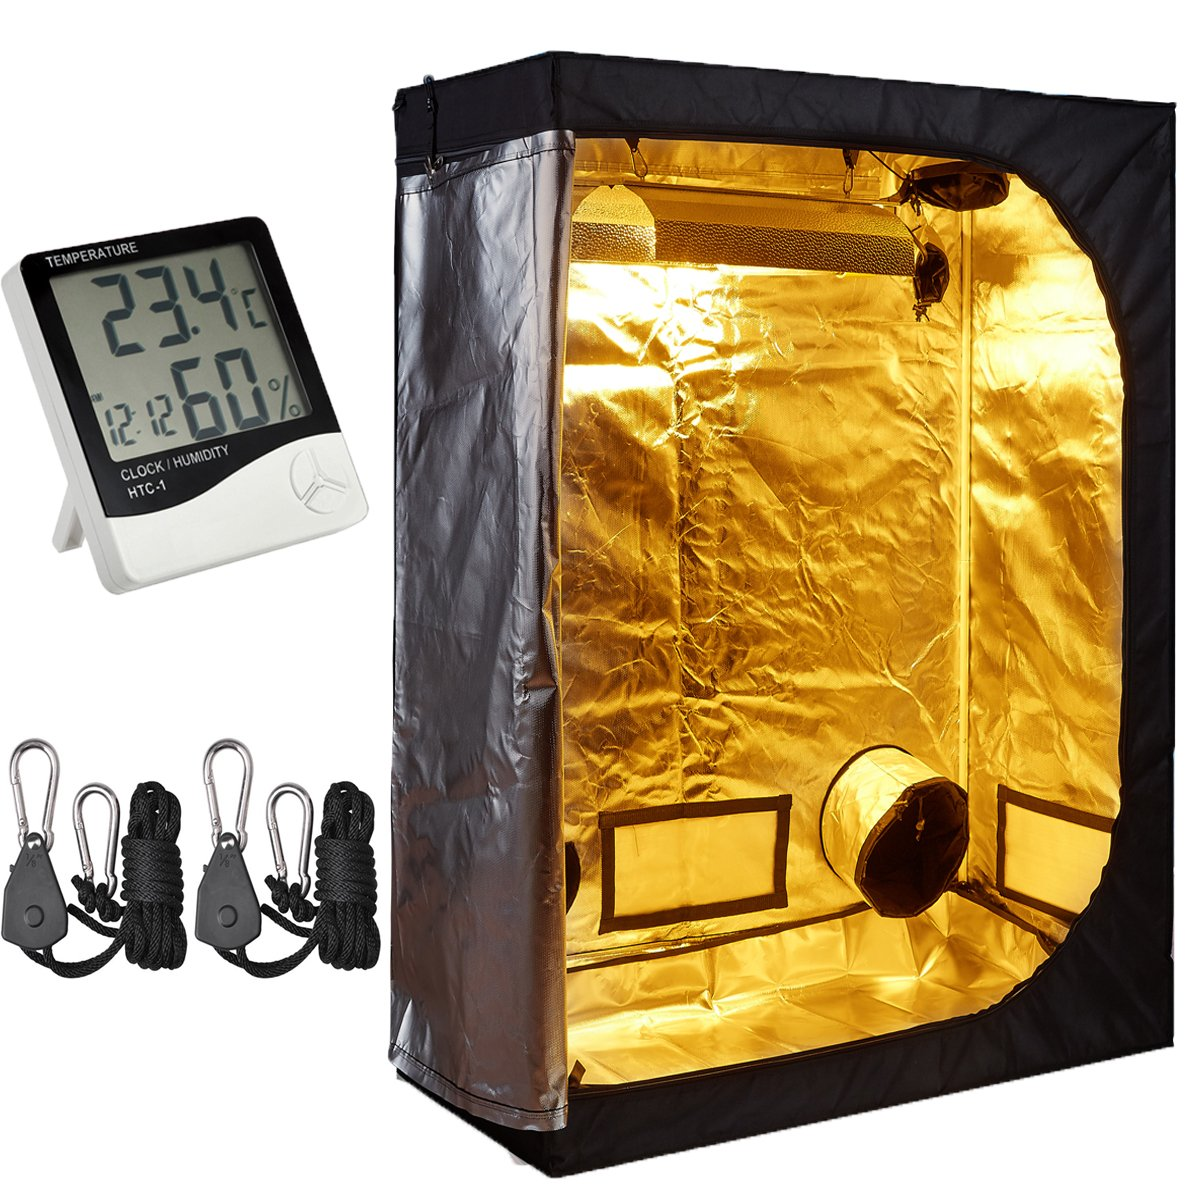 TopoLite 48''x24''x60'' Grow Tent + 1 Pair Light Hangers + 1 Pcs Hygrometer Thermometer for Indoor Garden Growing Room Hydroponic System (48''x24''x60'' Kit)